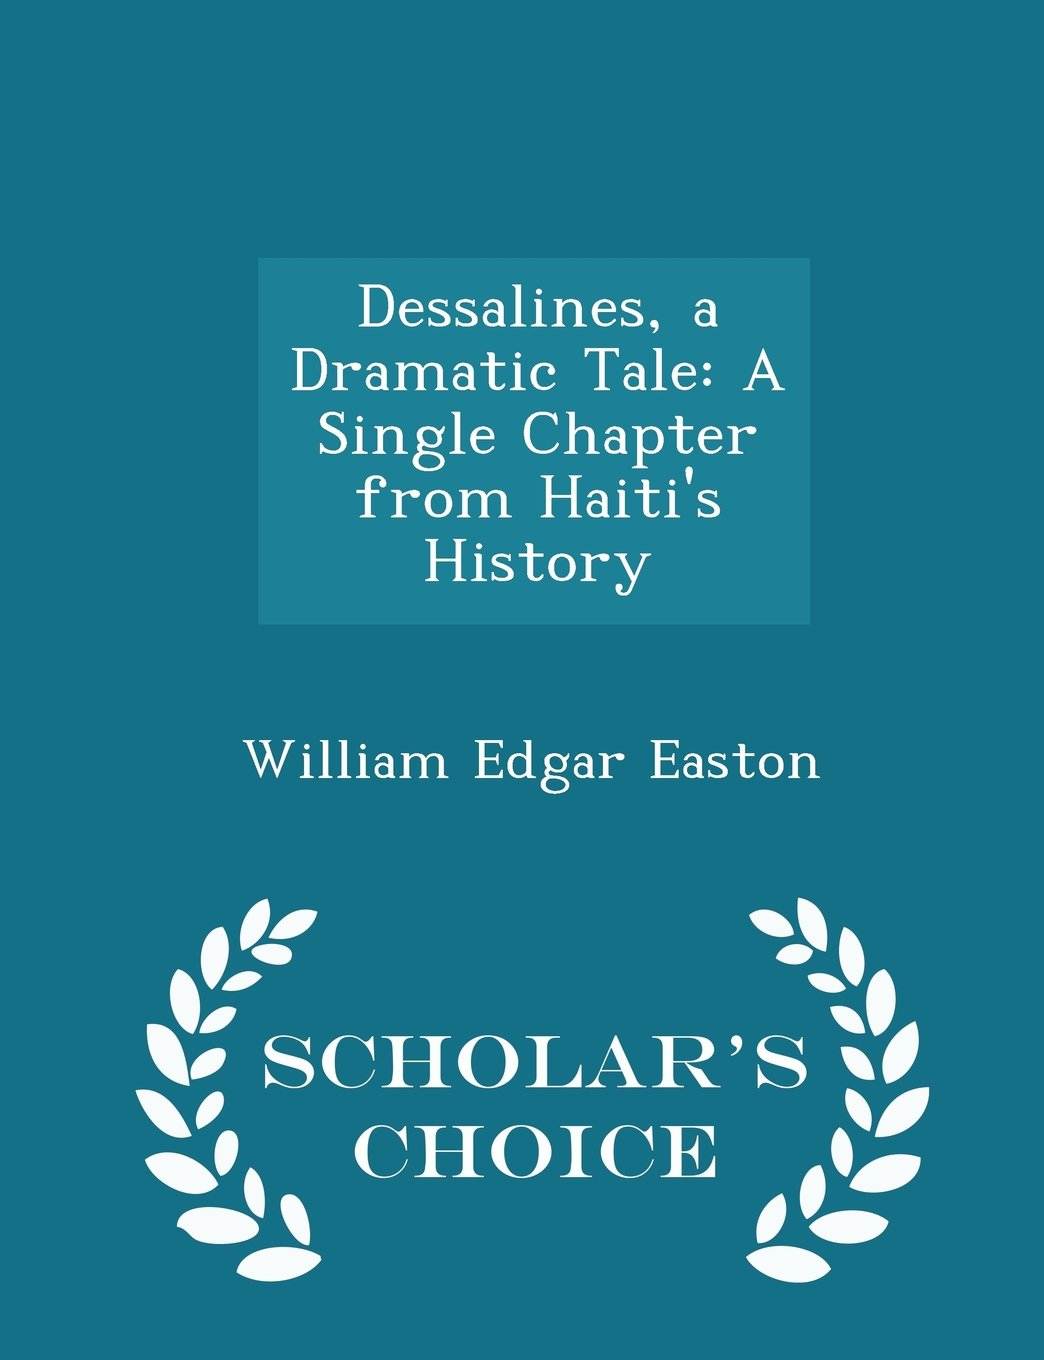 Dessalines, a Dramatic Tale: A Single Chapter from Haiti's History - Scholar's Choice Edition